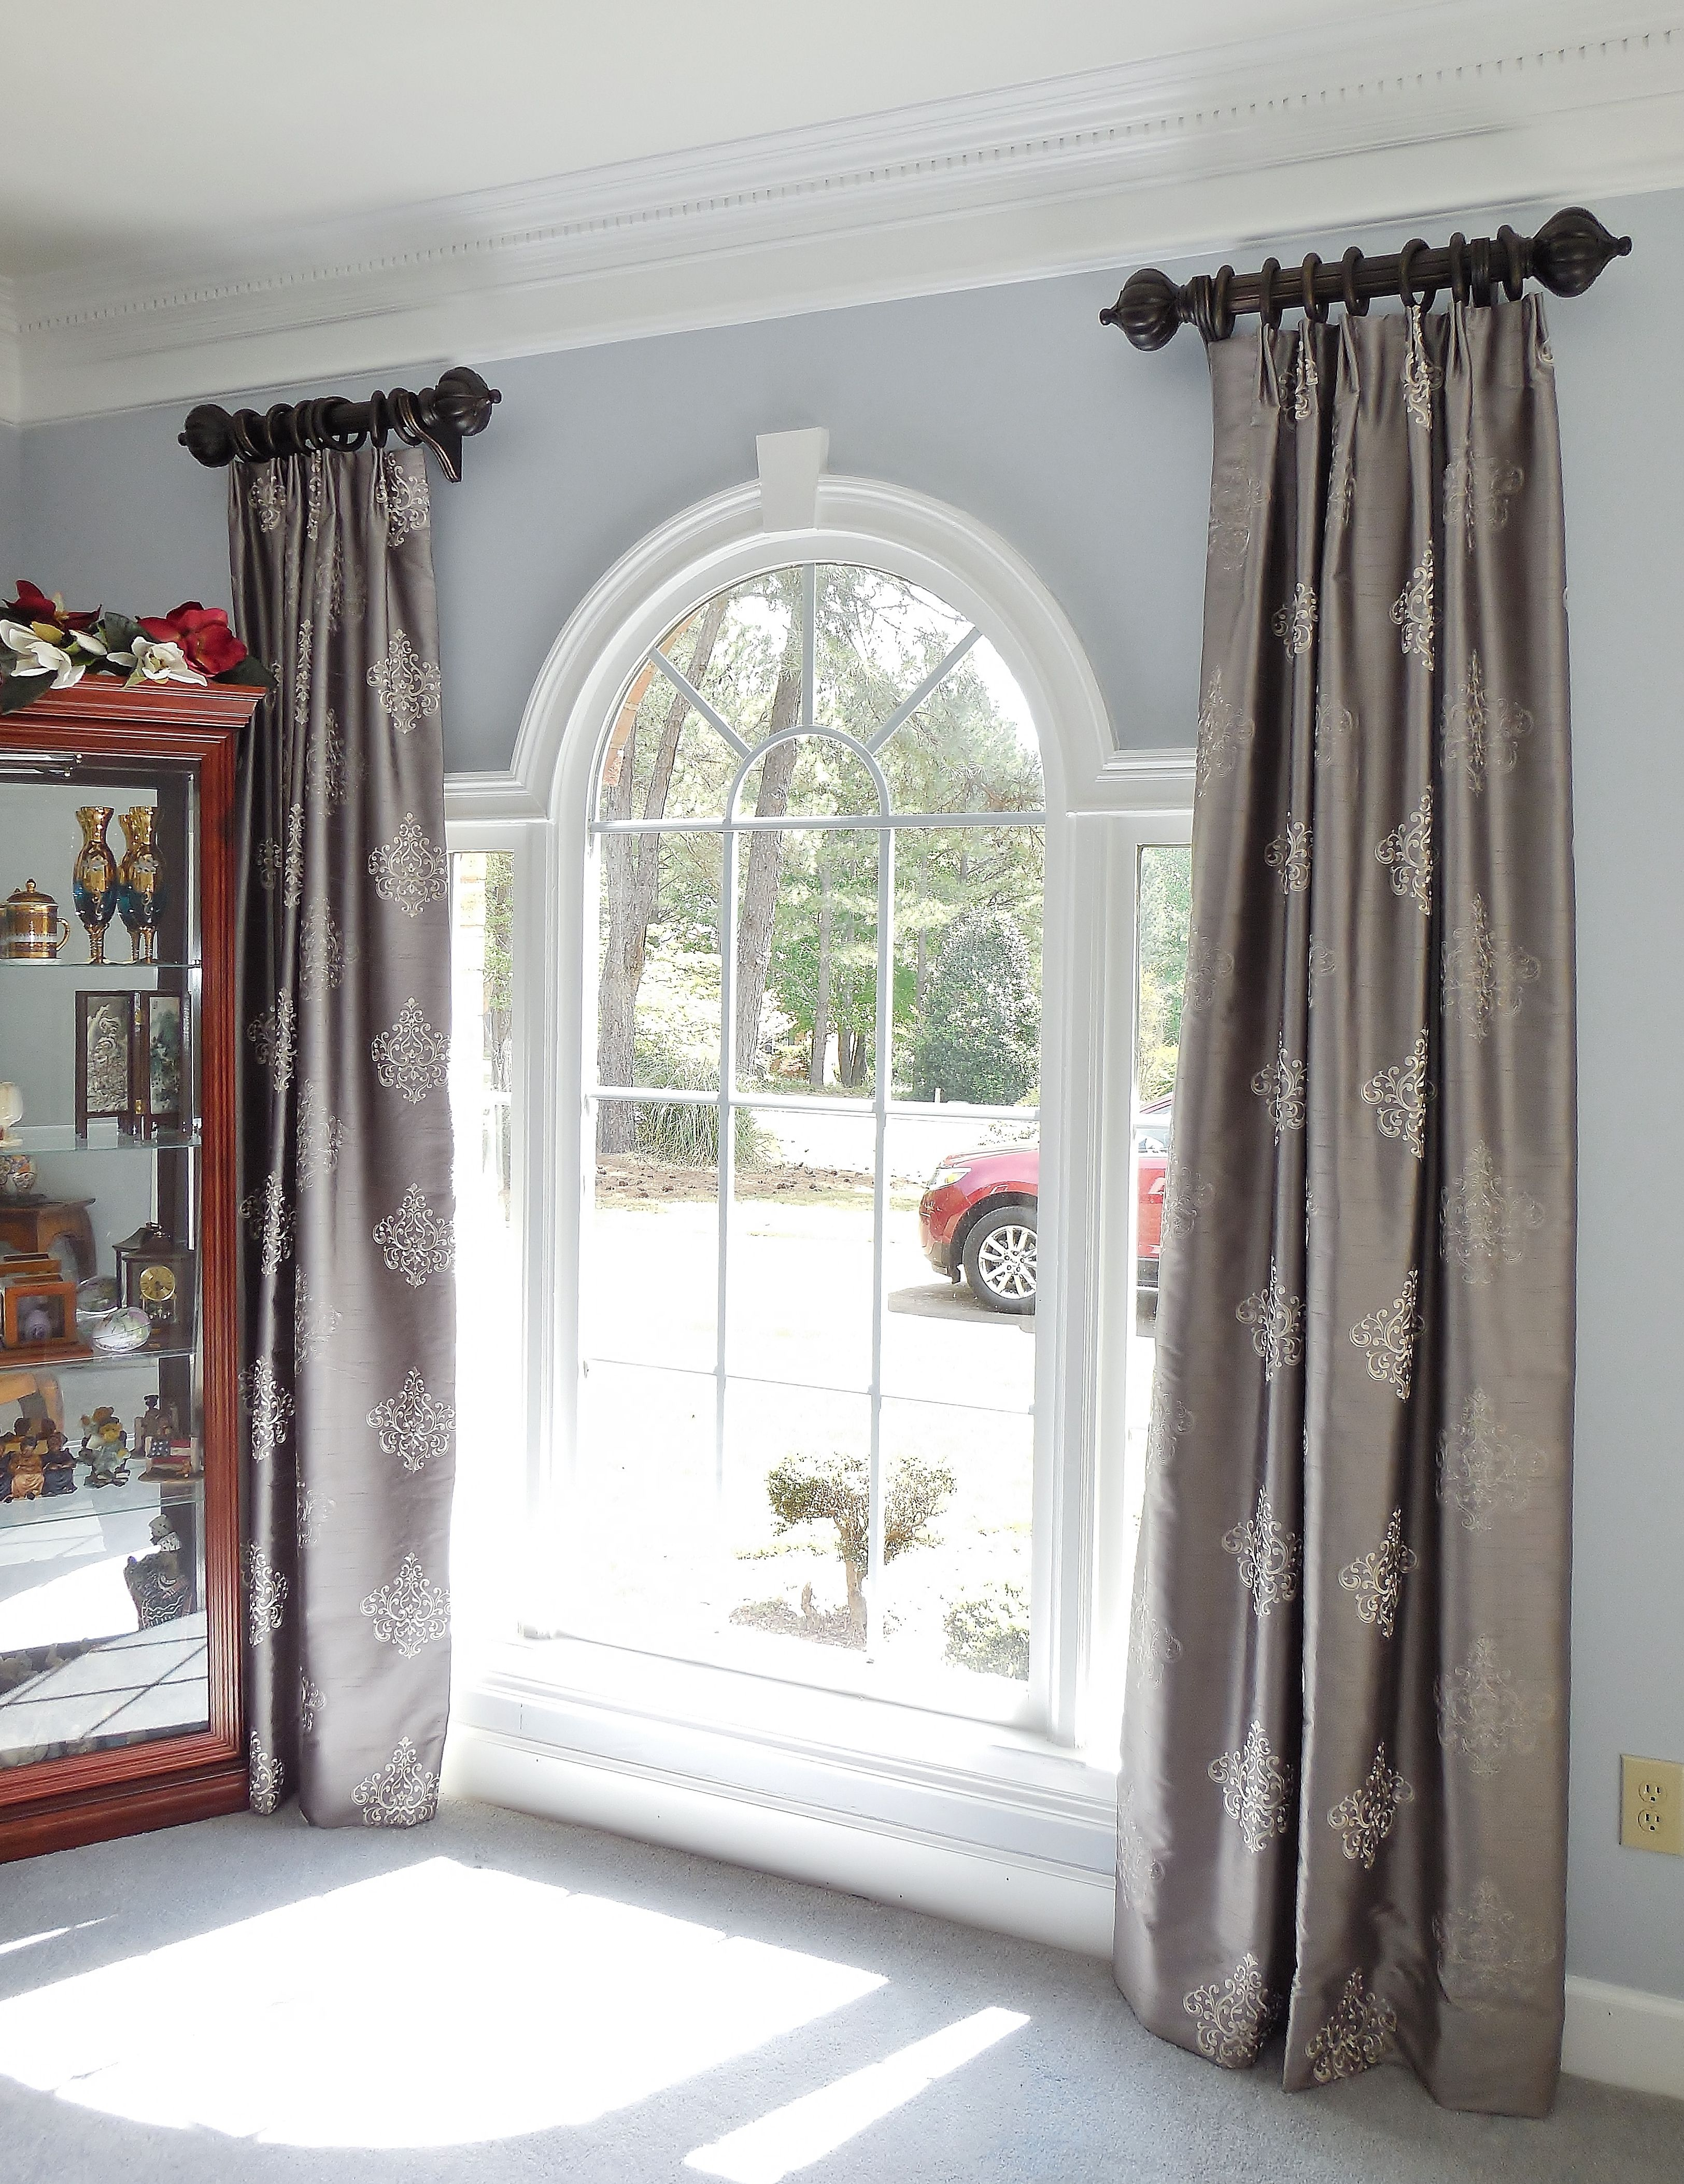 ring curtains on short rods above